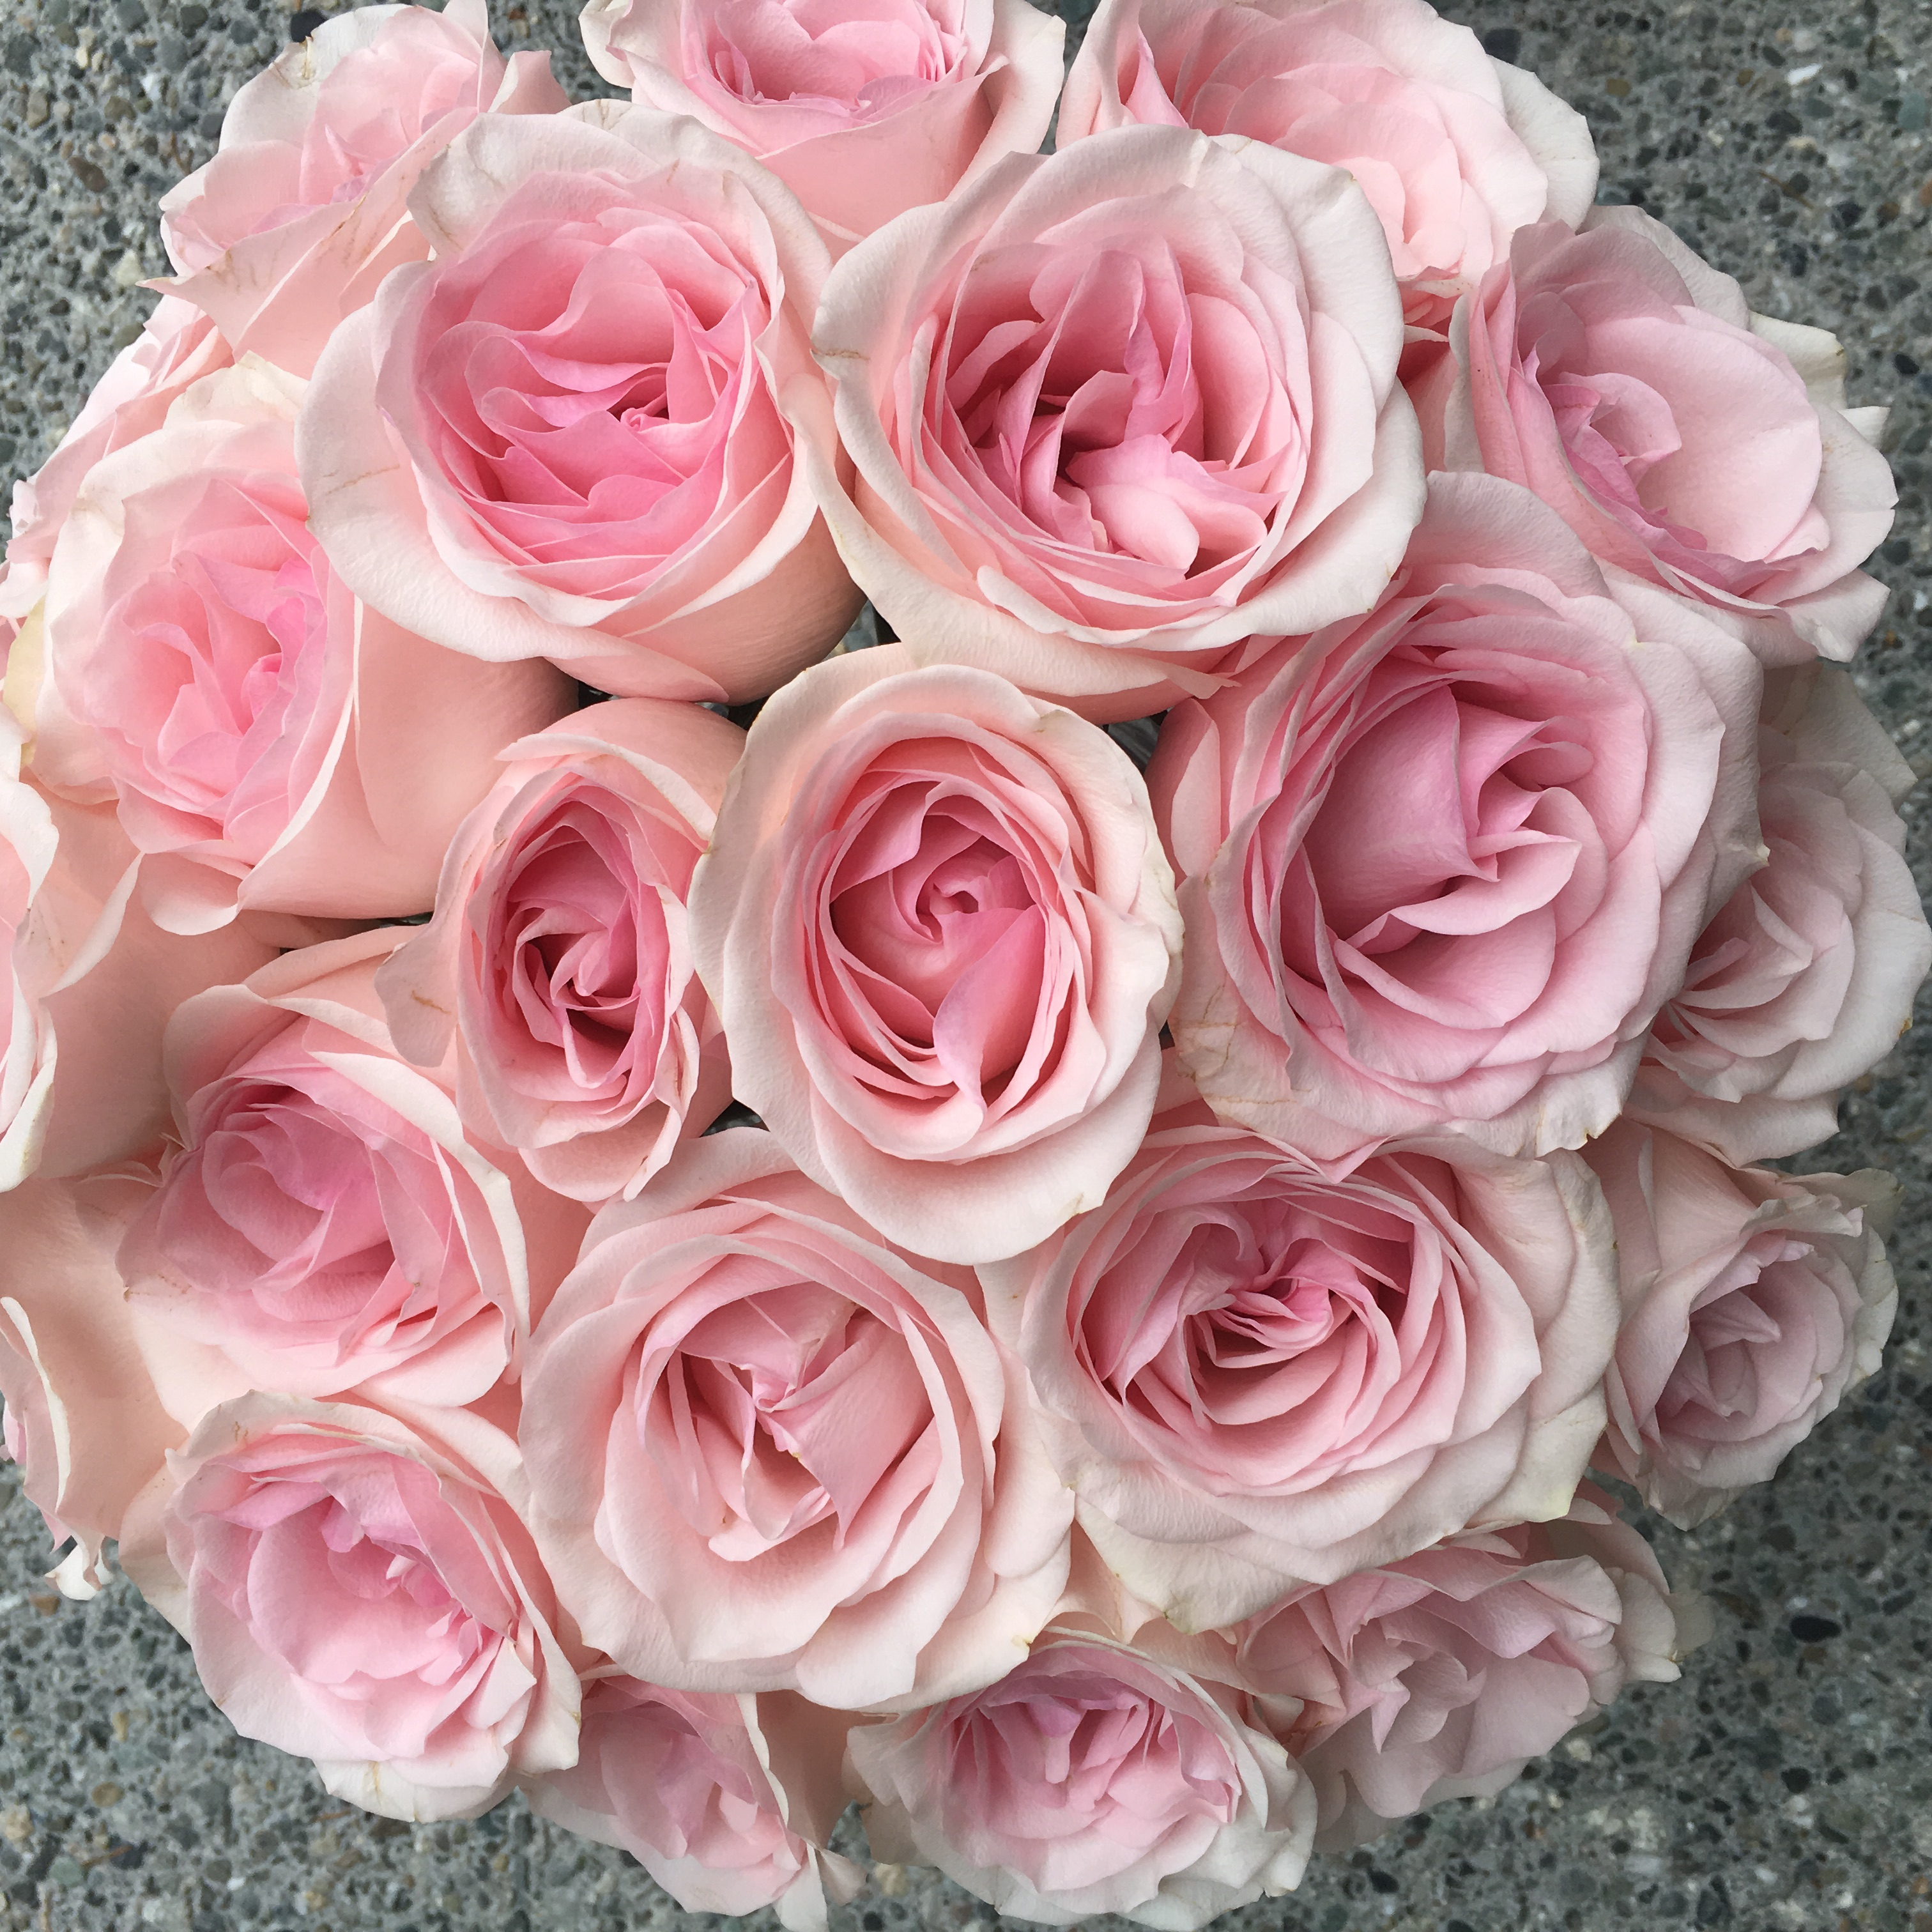 Flirty Fleurs Pink Rose Study with Roses from Amato Wholesale - Day 6 - Novia